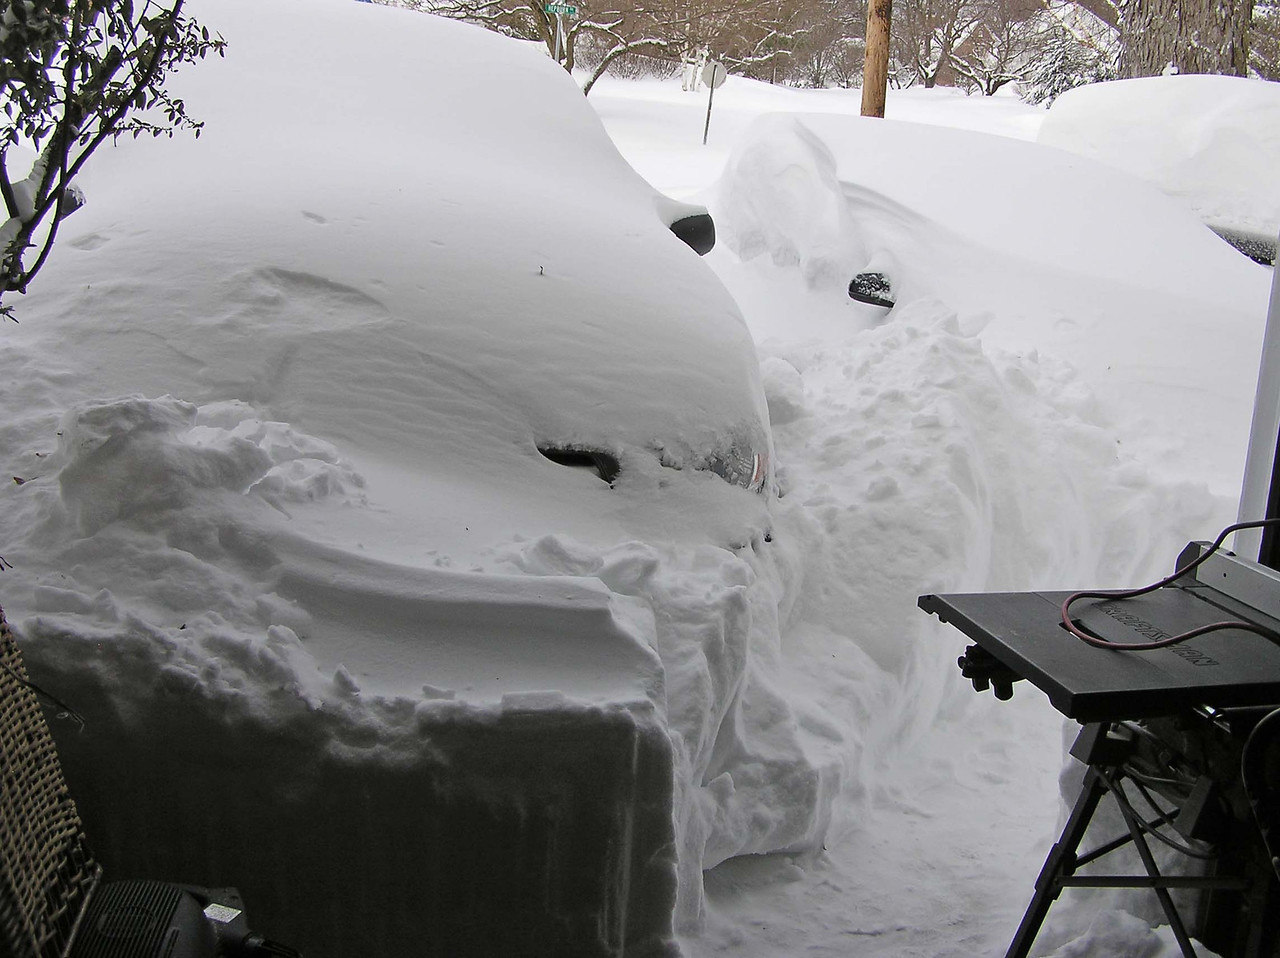 The garage door was the only way to get out of the house at first.